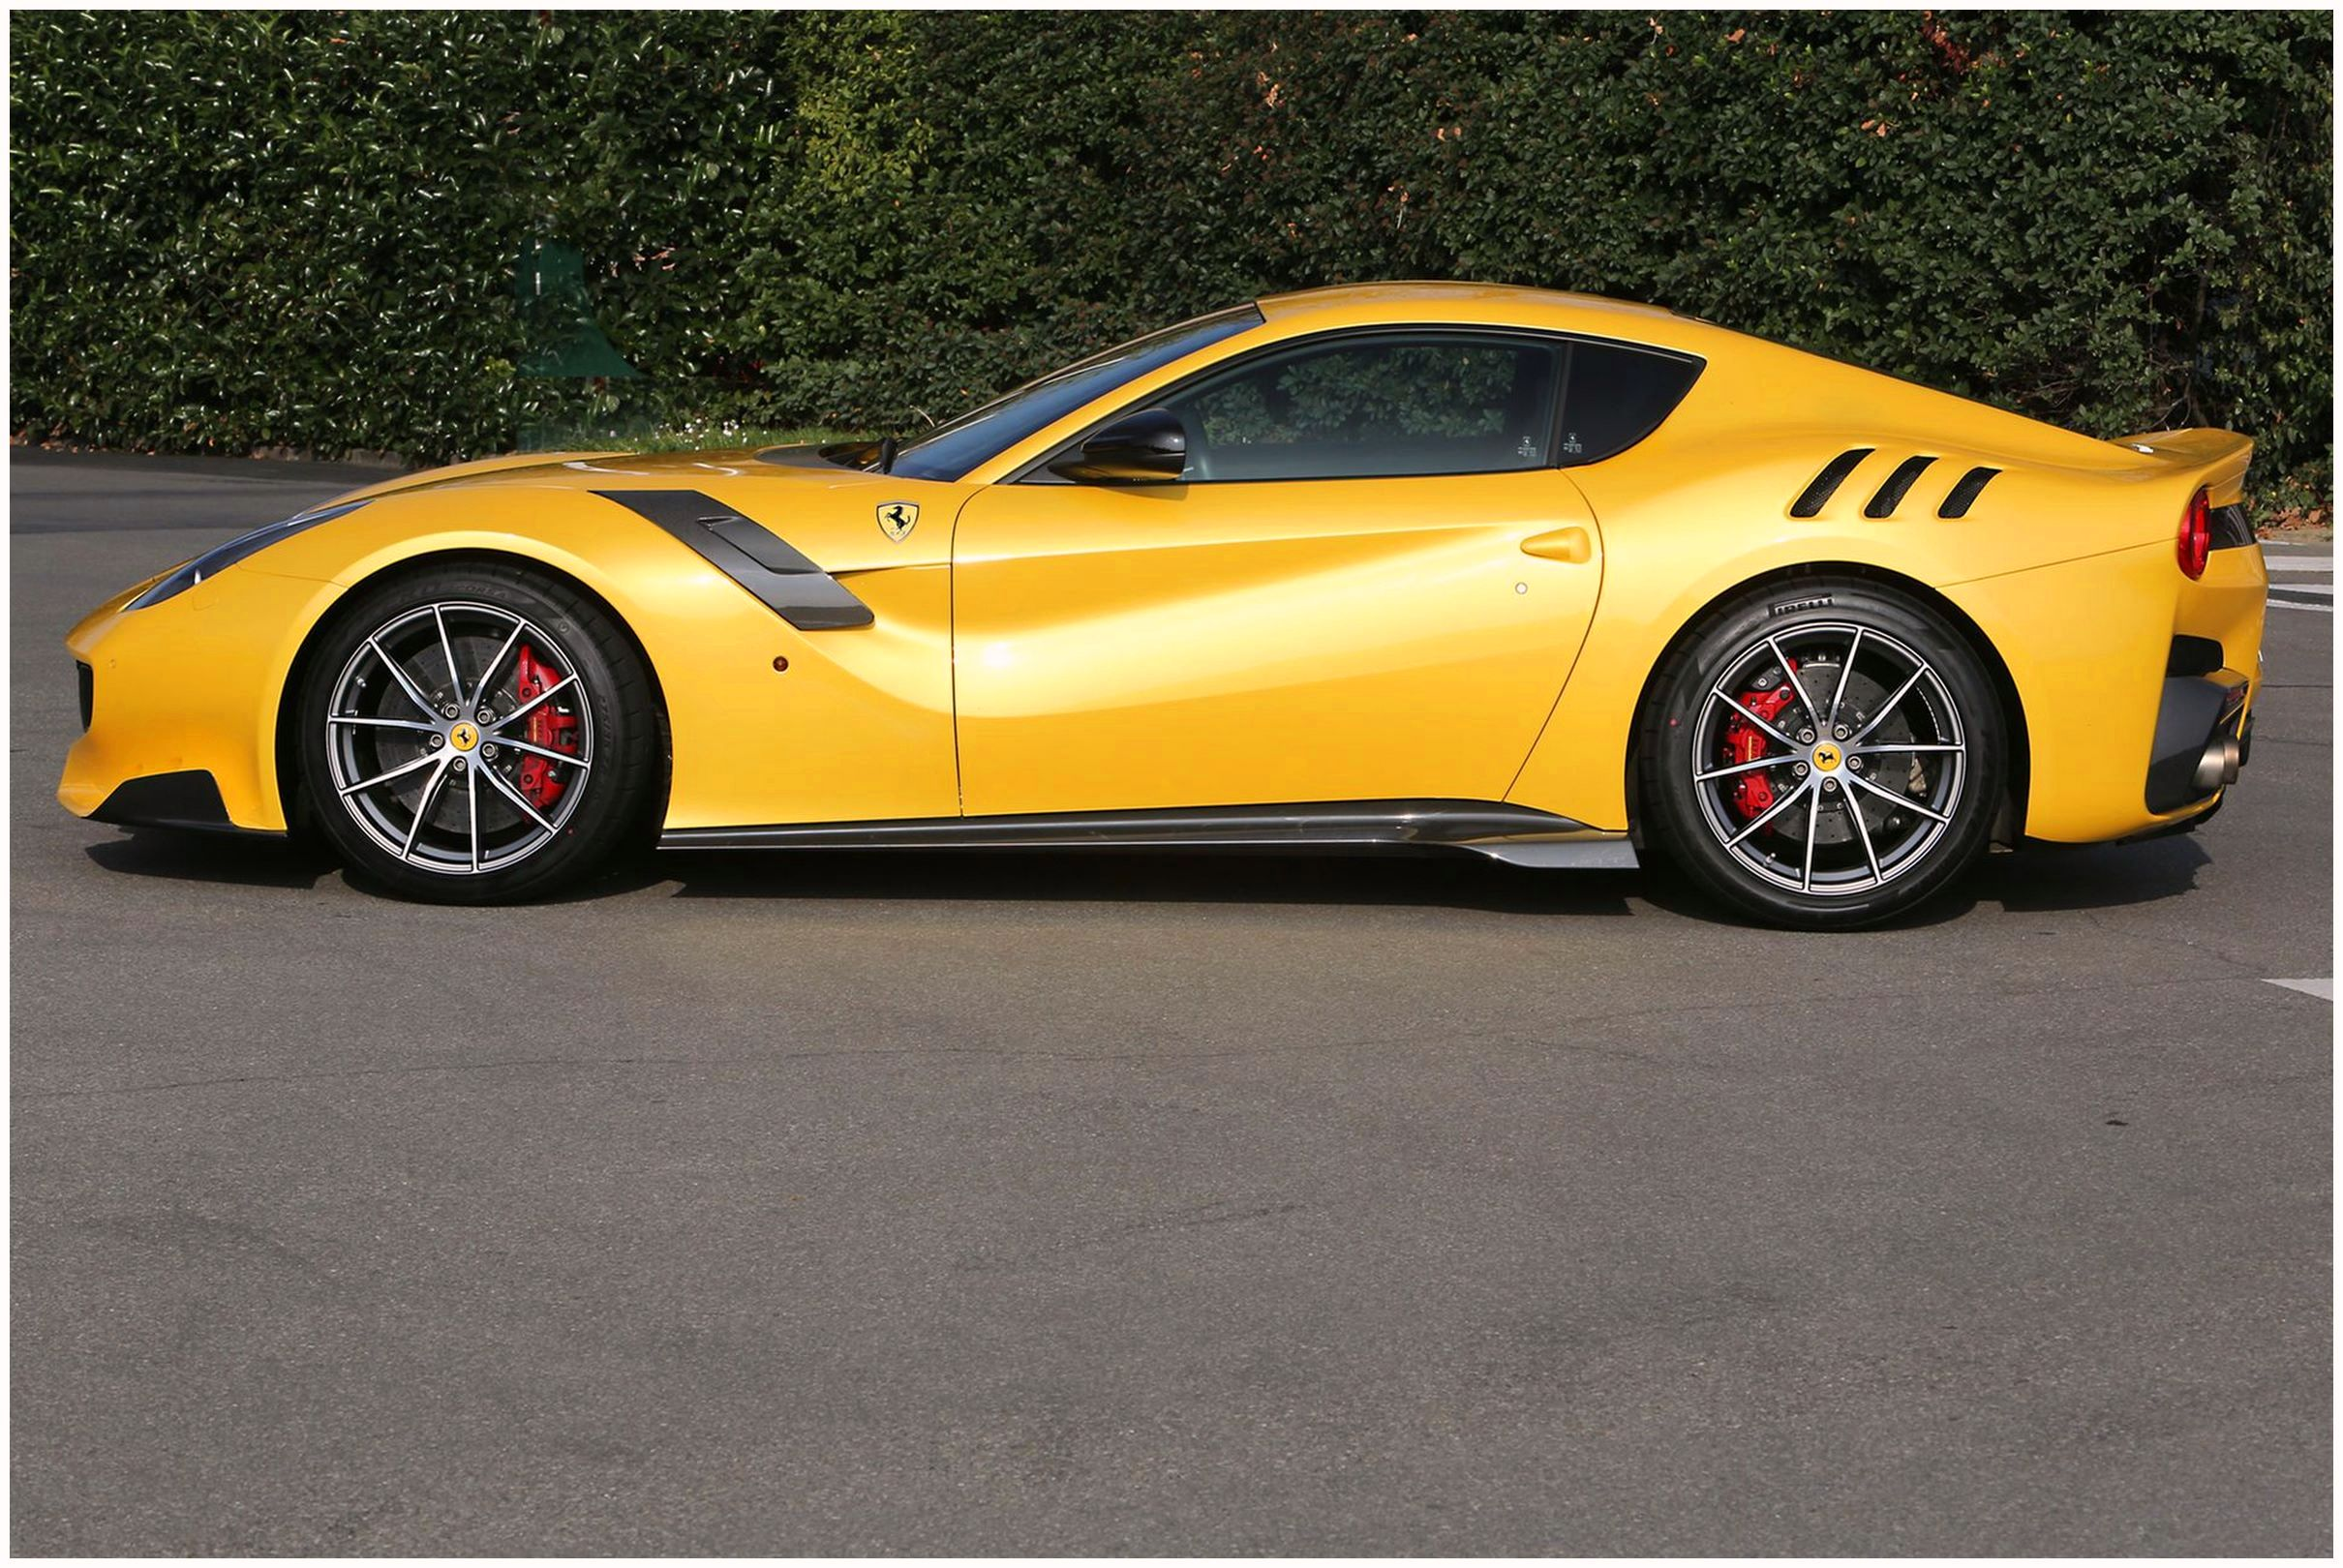 Ferrari F12tdf HD wallpapers 4k images download free